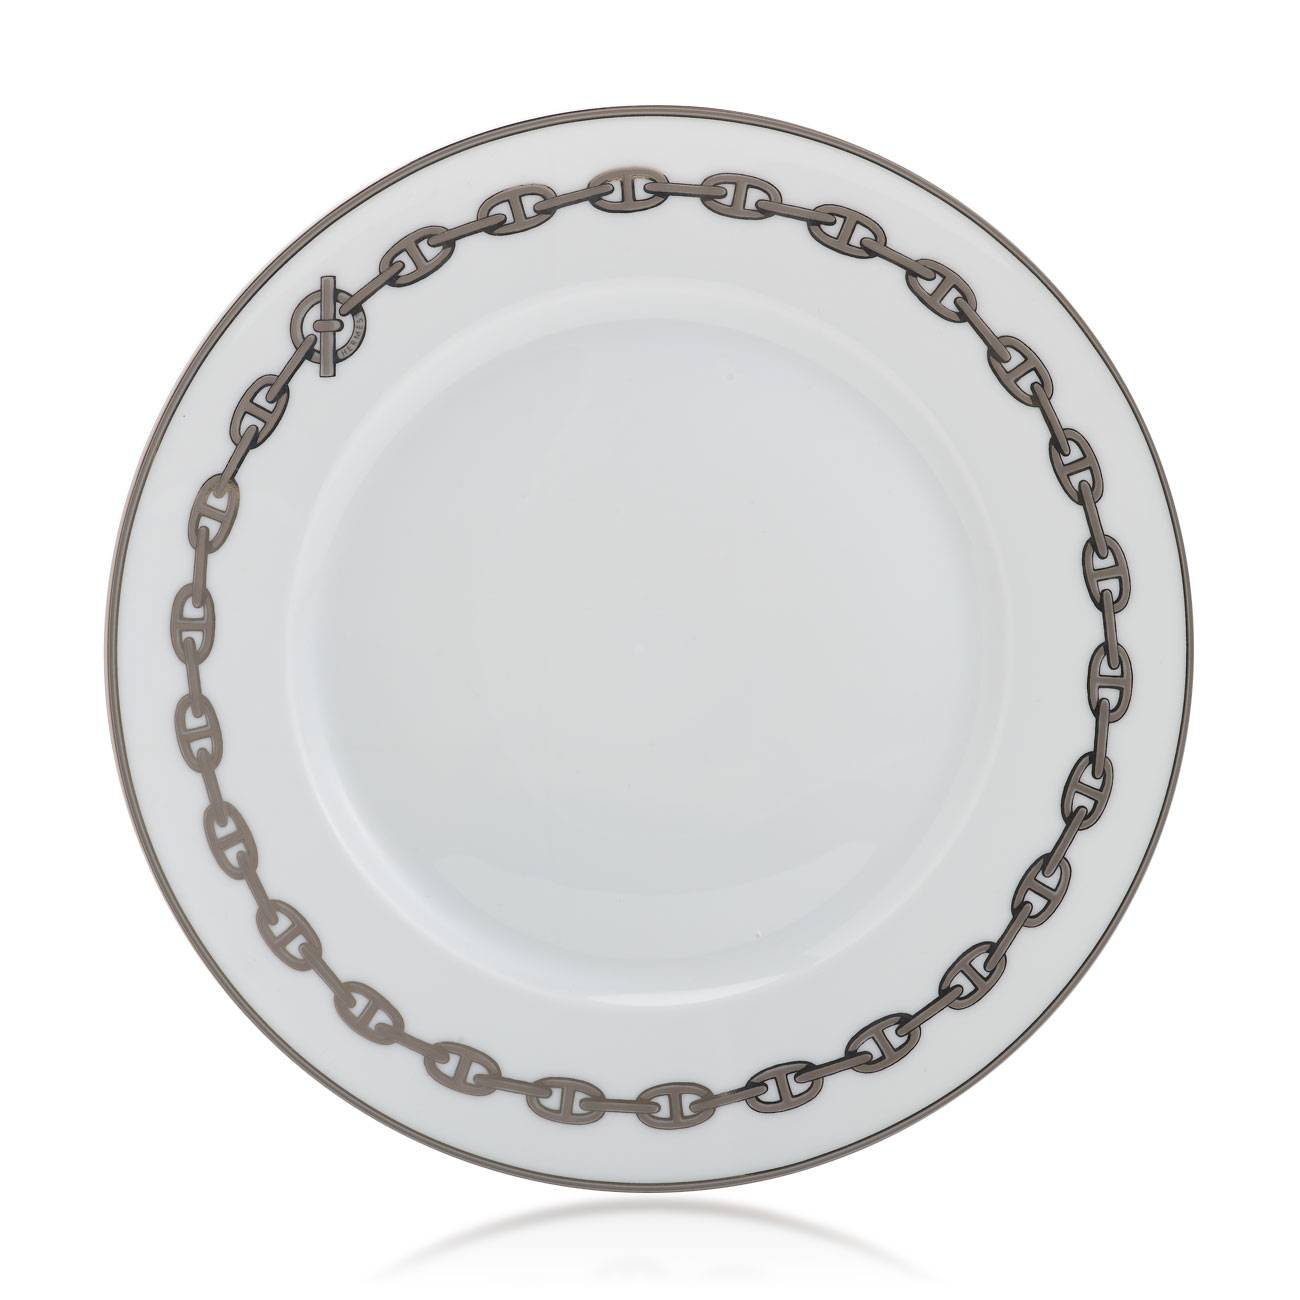 Herms Chane D'Ancre Platinum American Dinner Plate